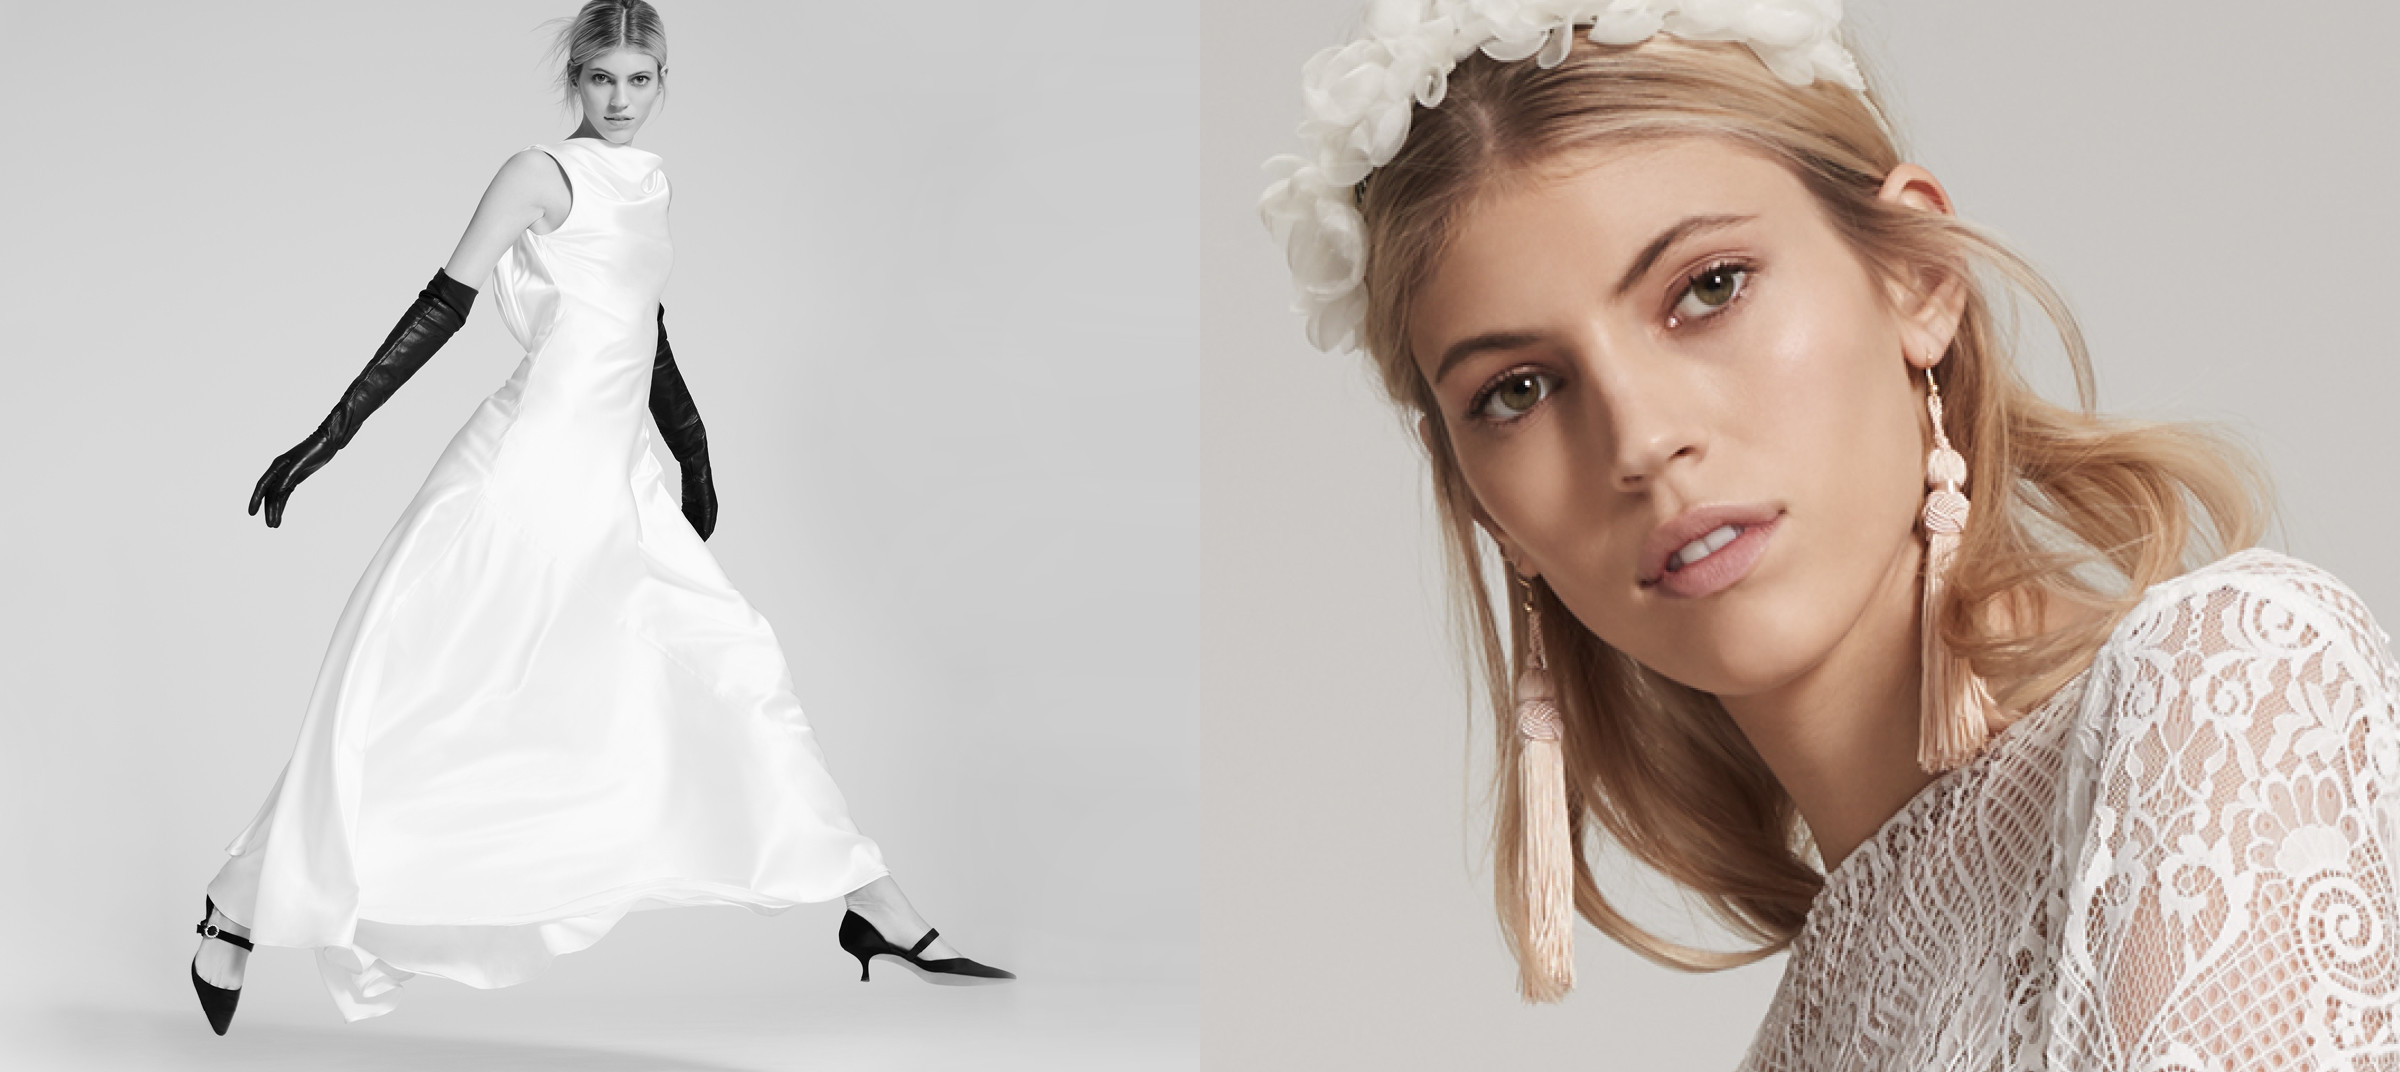 Bridal photoshoot and portrait for Fame & Partners with creative direction and produced by DTE Studio